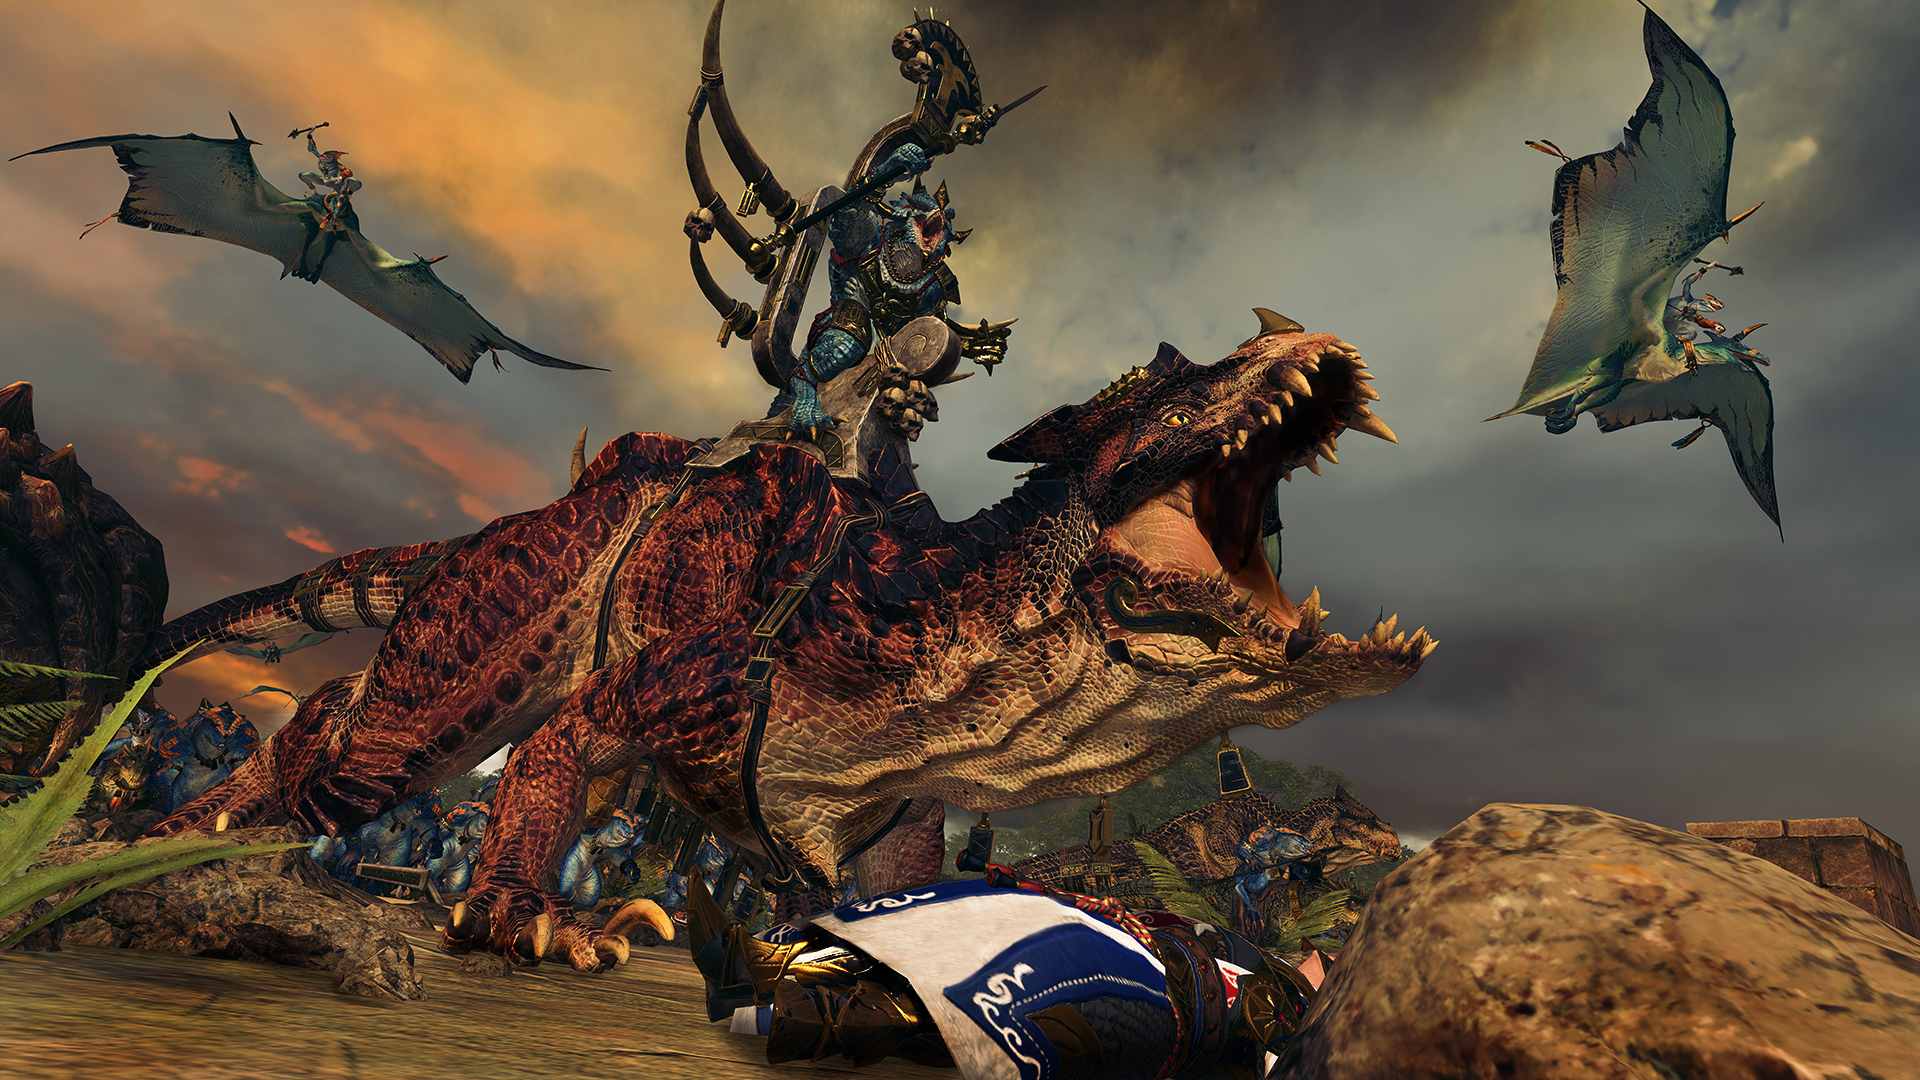 What has Total War: Three Kingdoms learnt from Total War: Warhammer